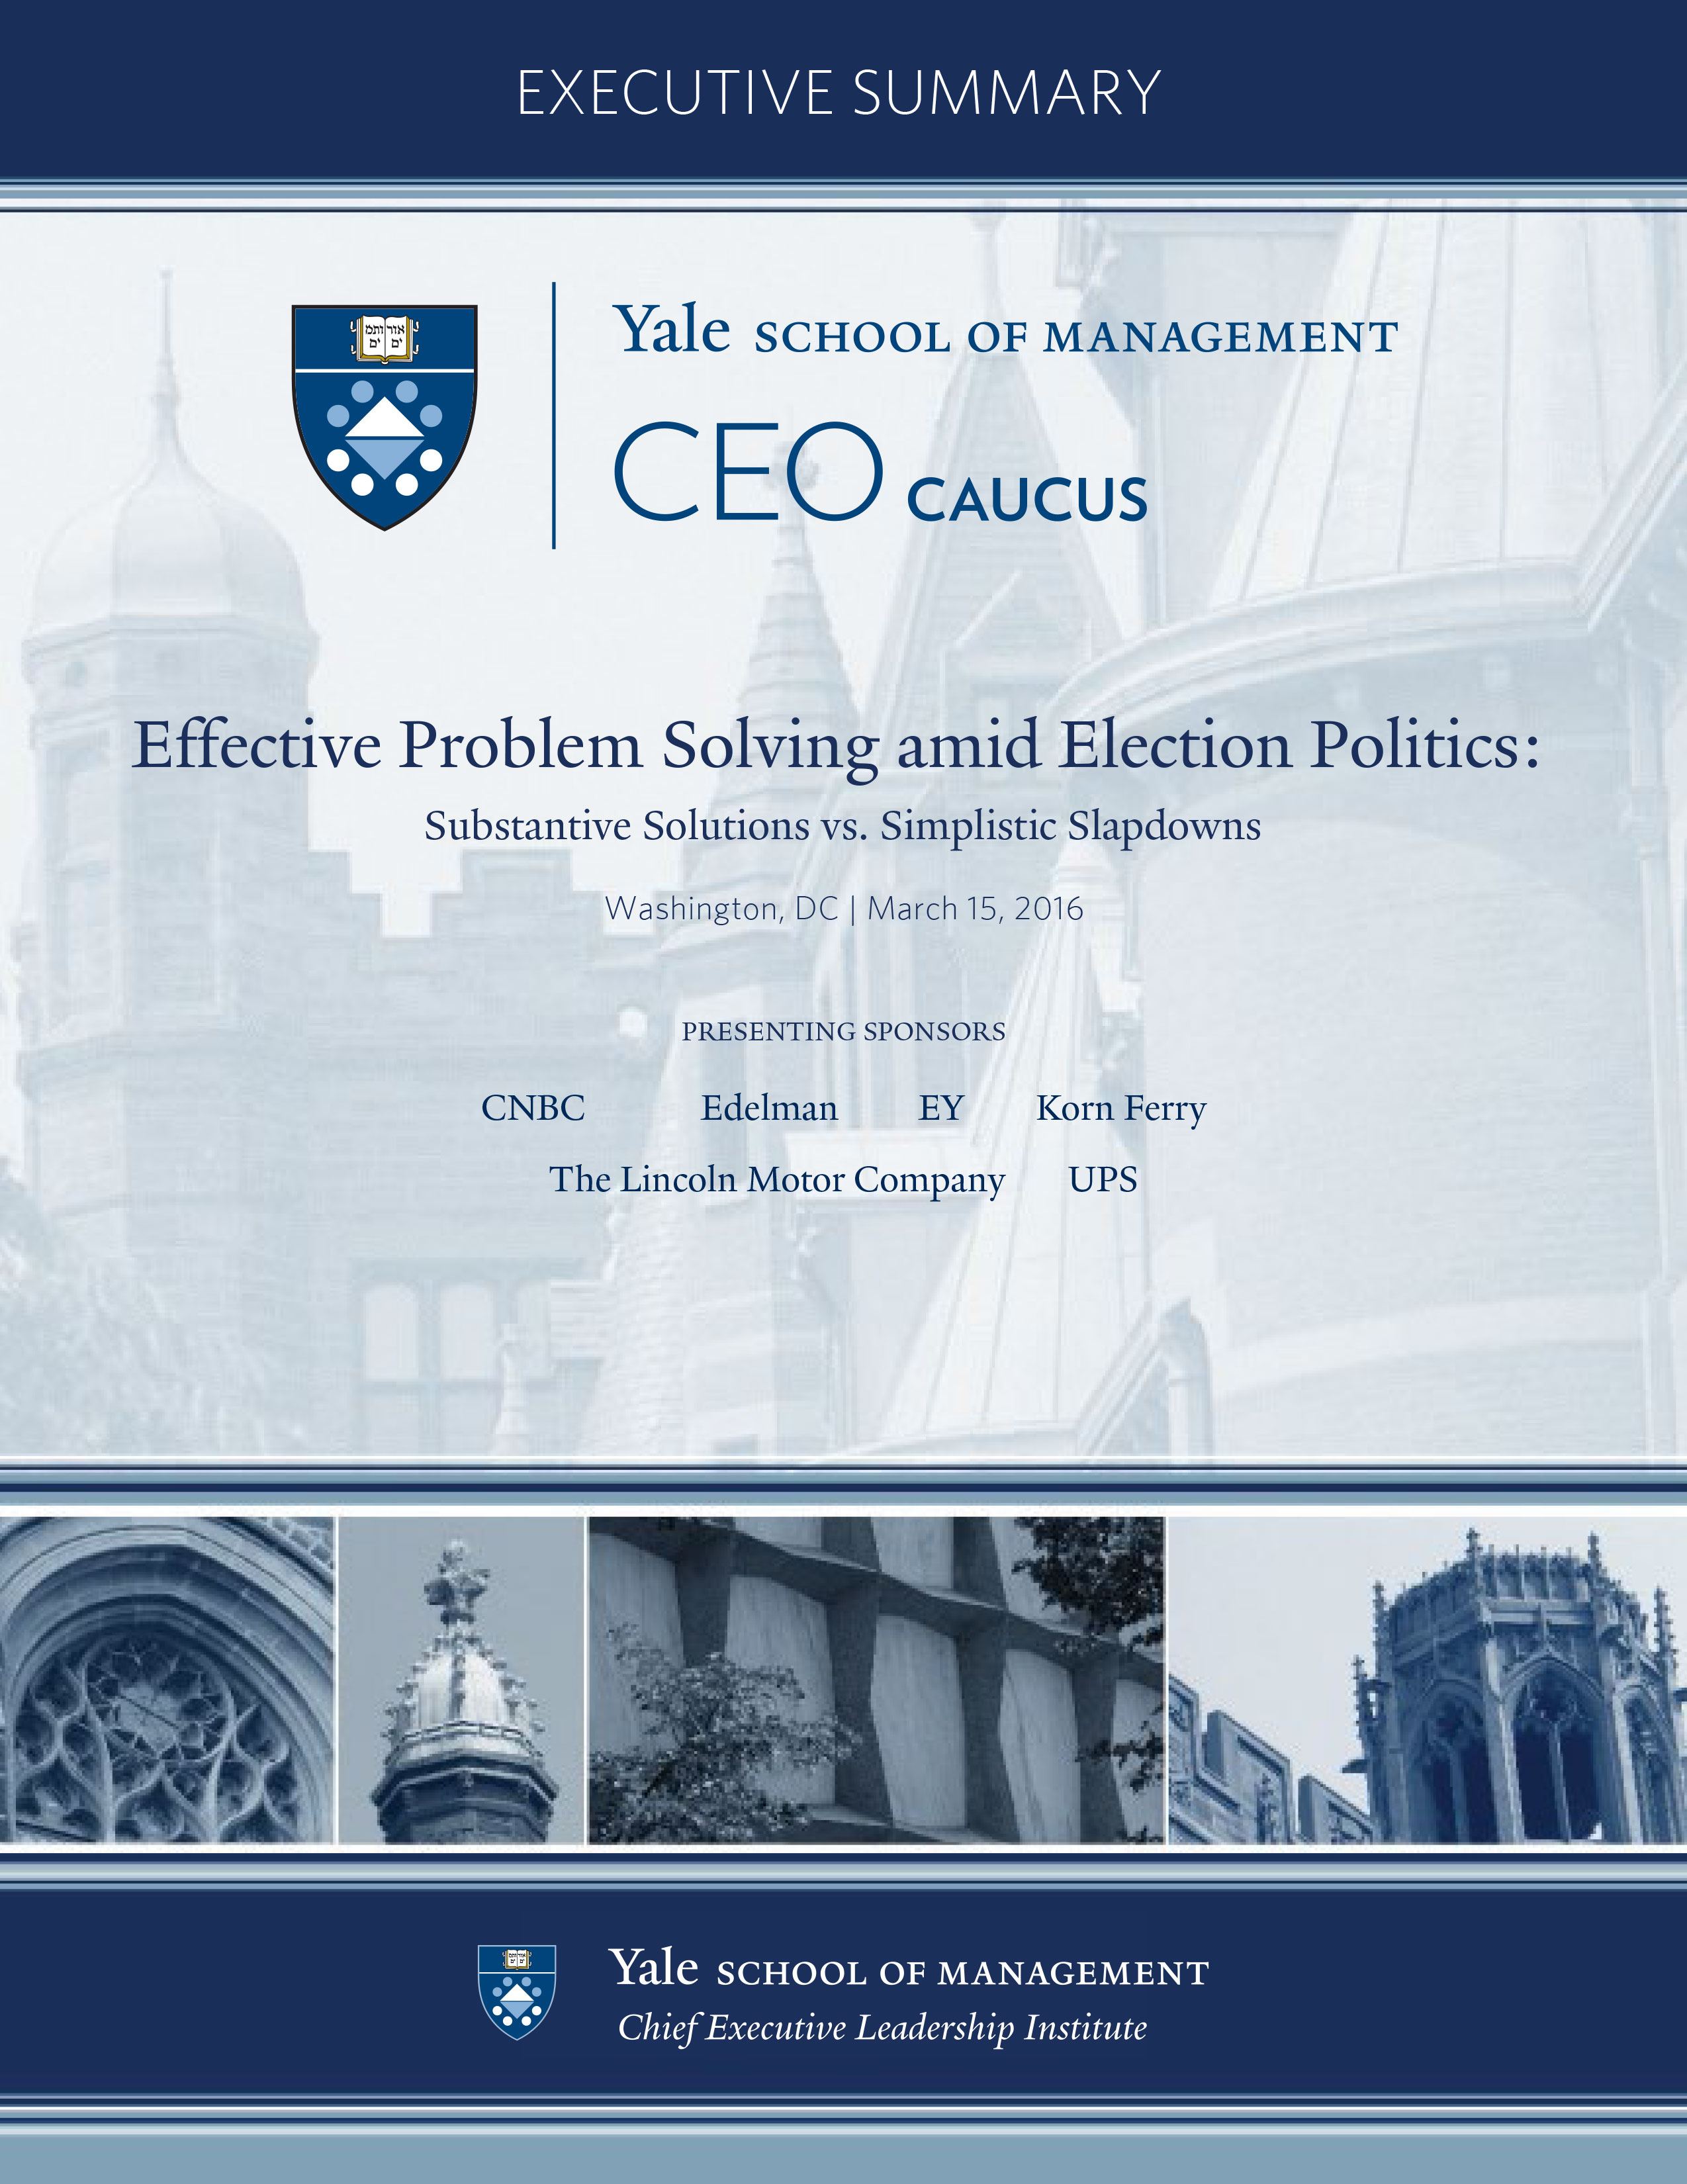 Yale School of Management CEO Caucus